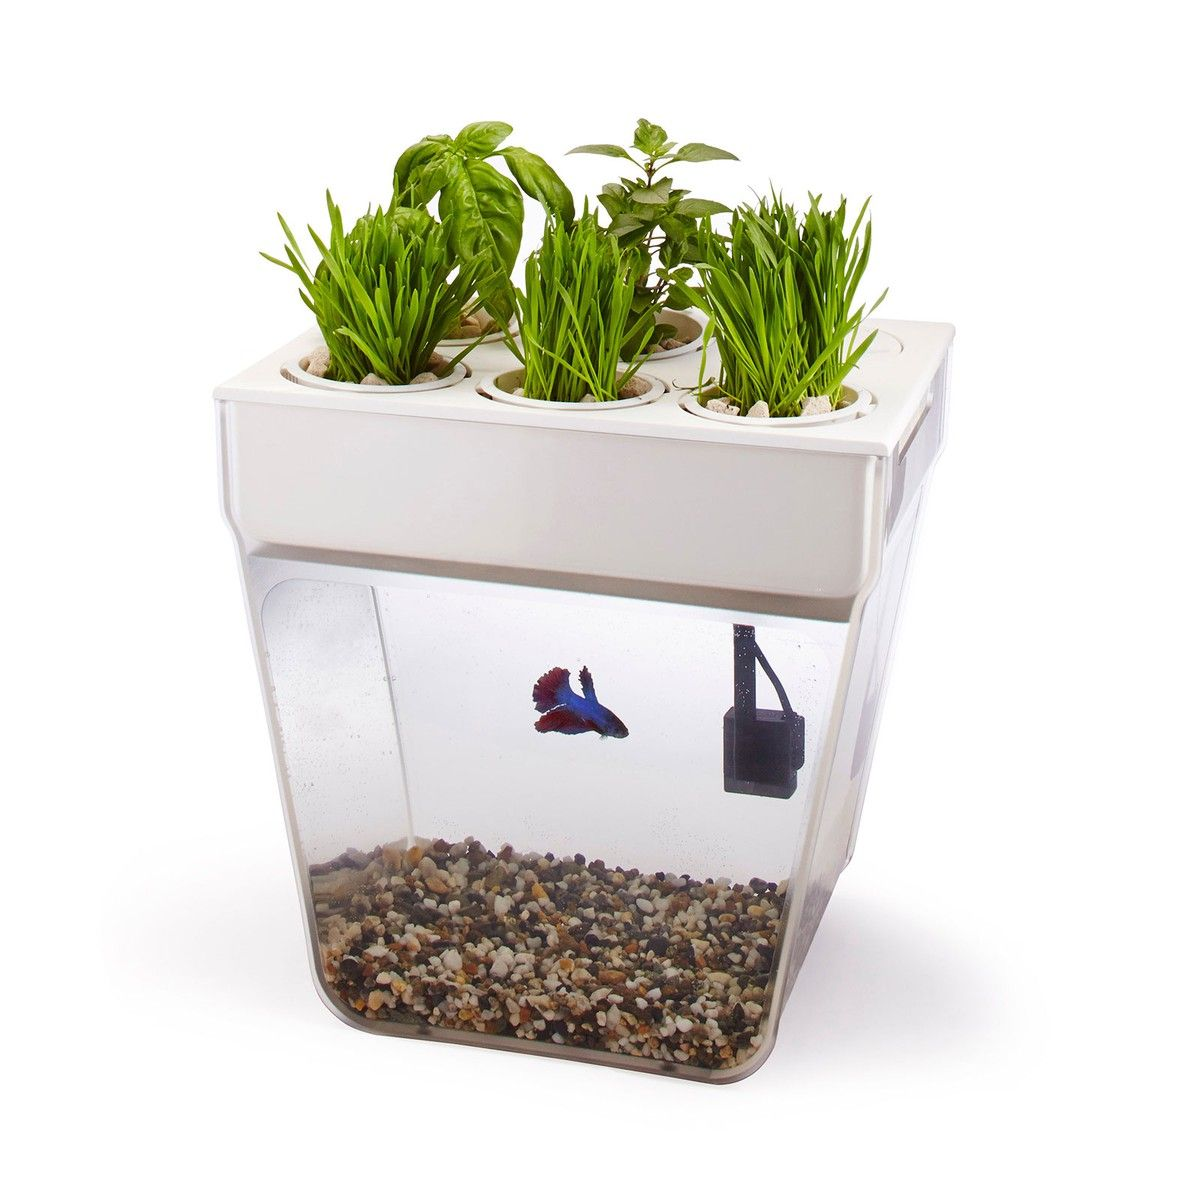 Ooh! A mini aquaponics system! This would be a great